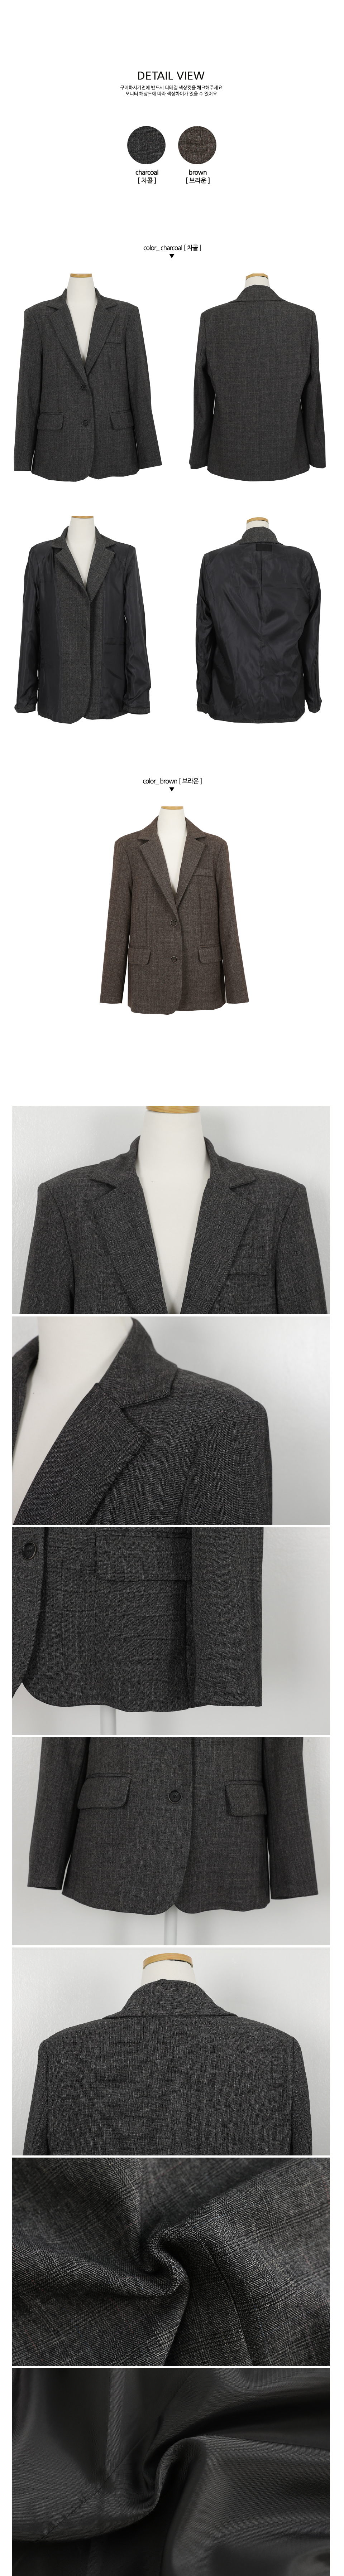 Josephzan Check Jacket